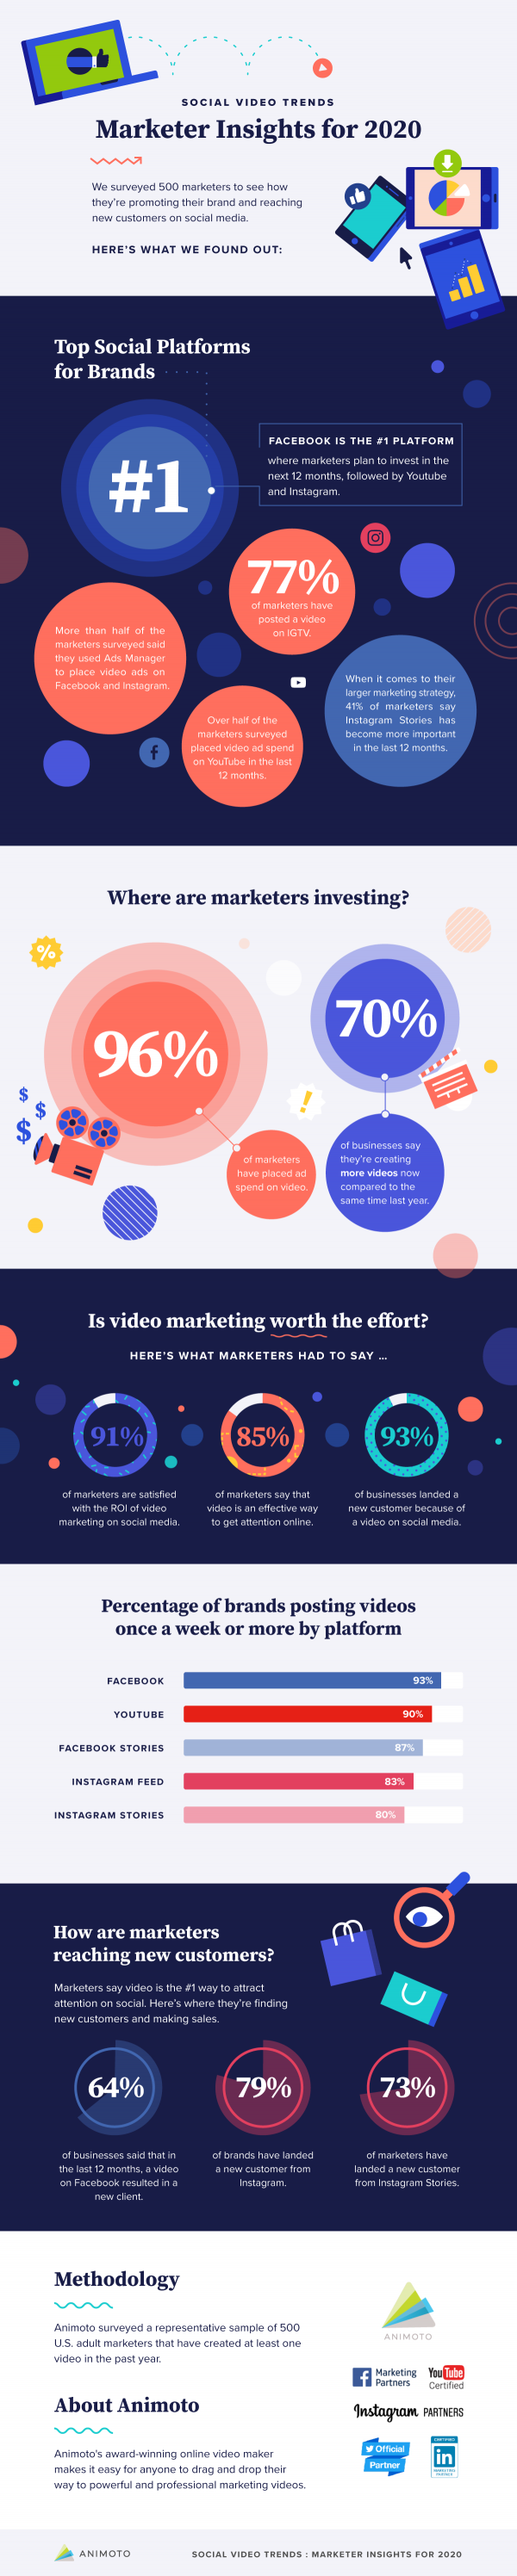 Animoto_MarketerInsightsFor2020_Infographic